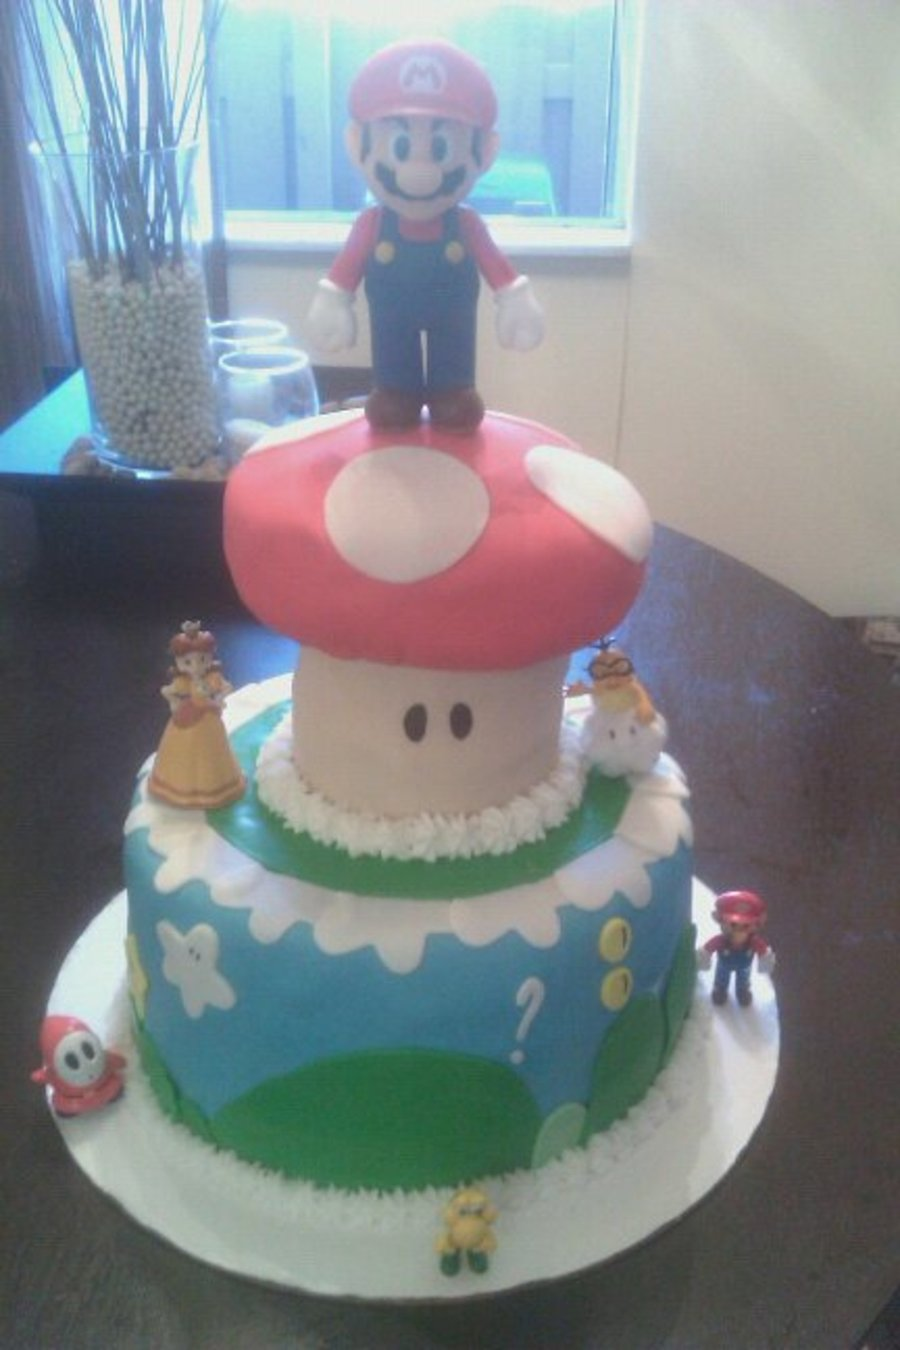 Super Mario Cake on Cake Central